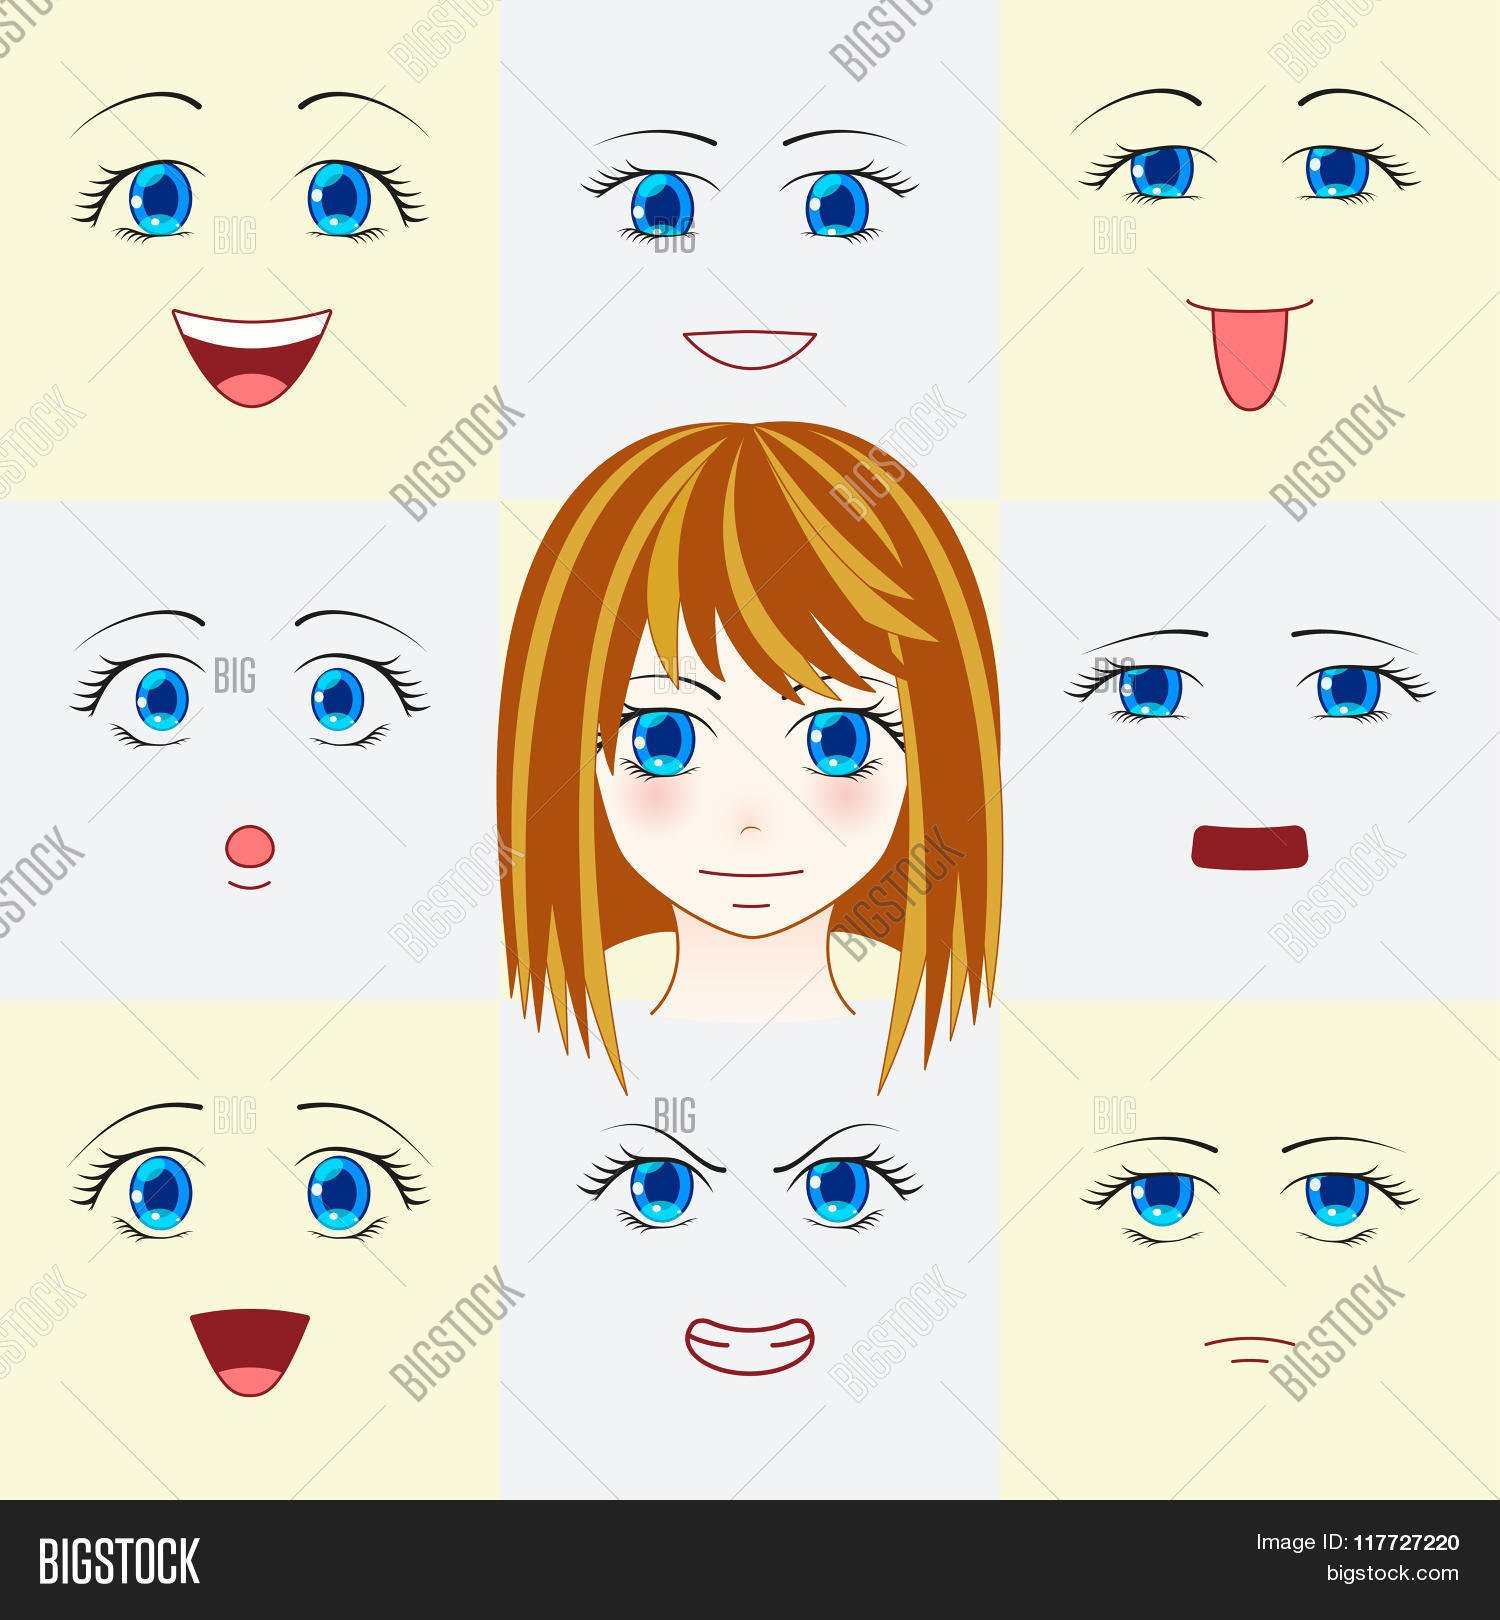 Set Of Faces In Manga Style Cute Anime Eyes And Mouths Different Human